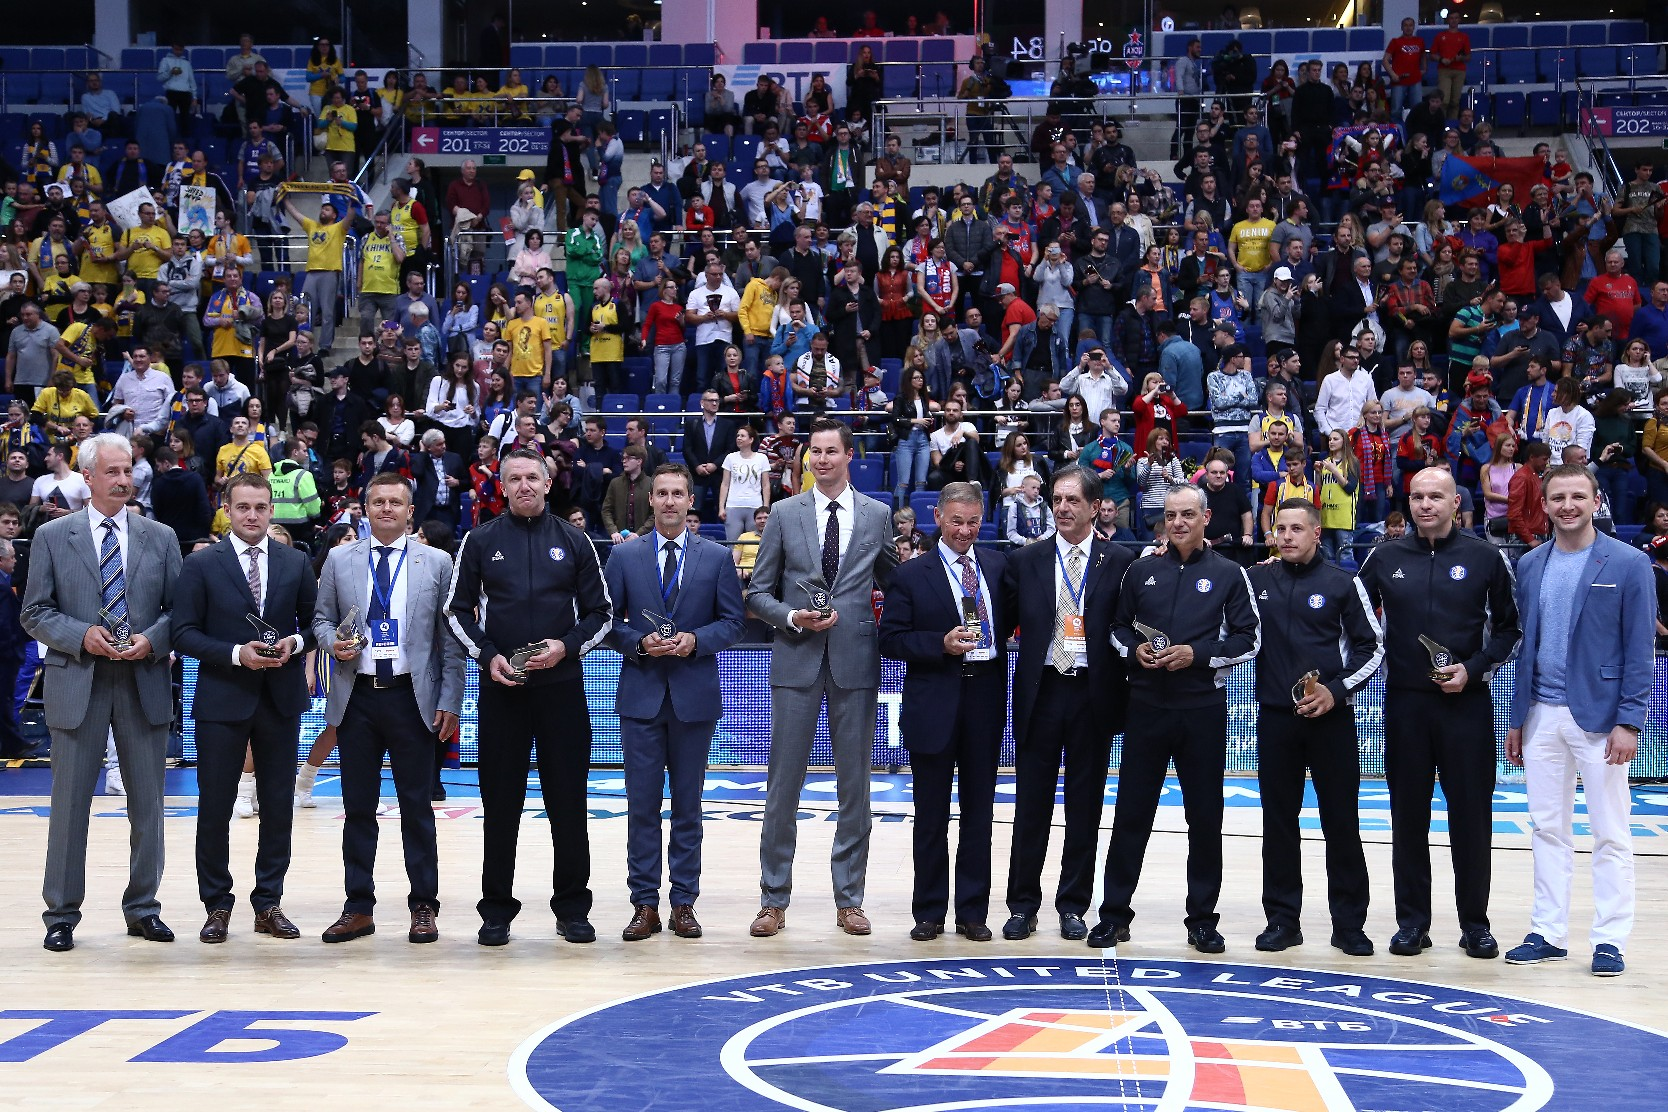 League Recognizes Referees And Commissioners At Final Four